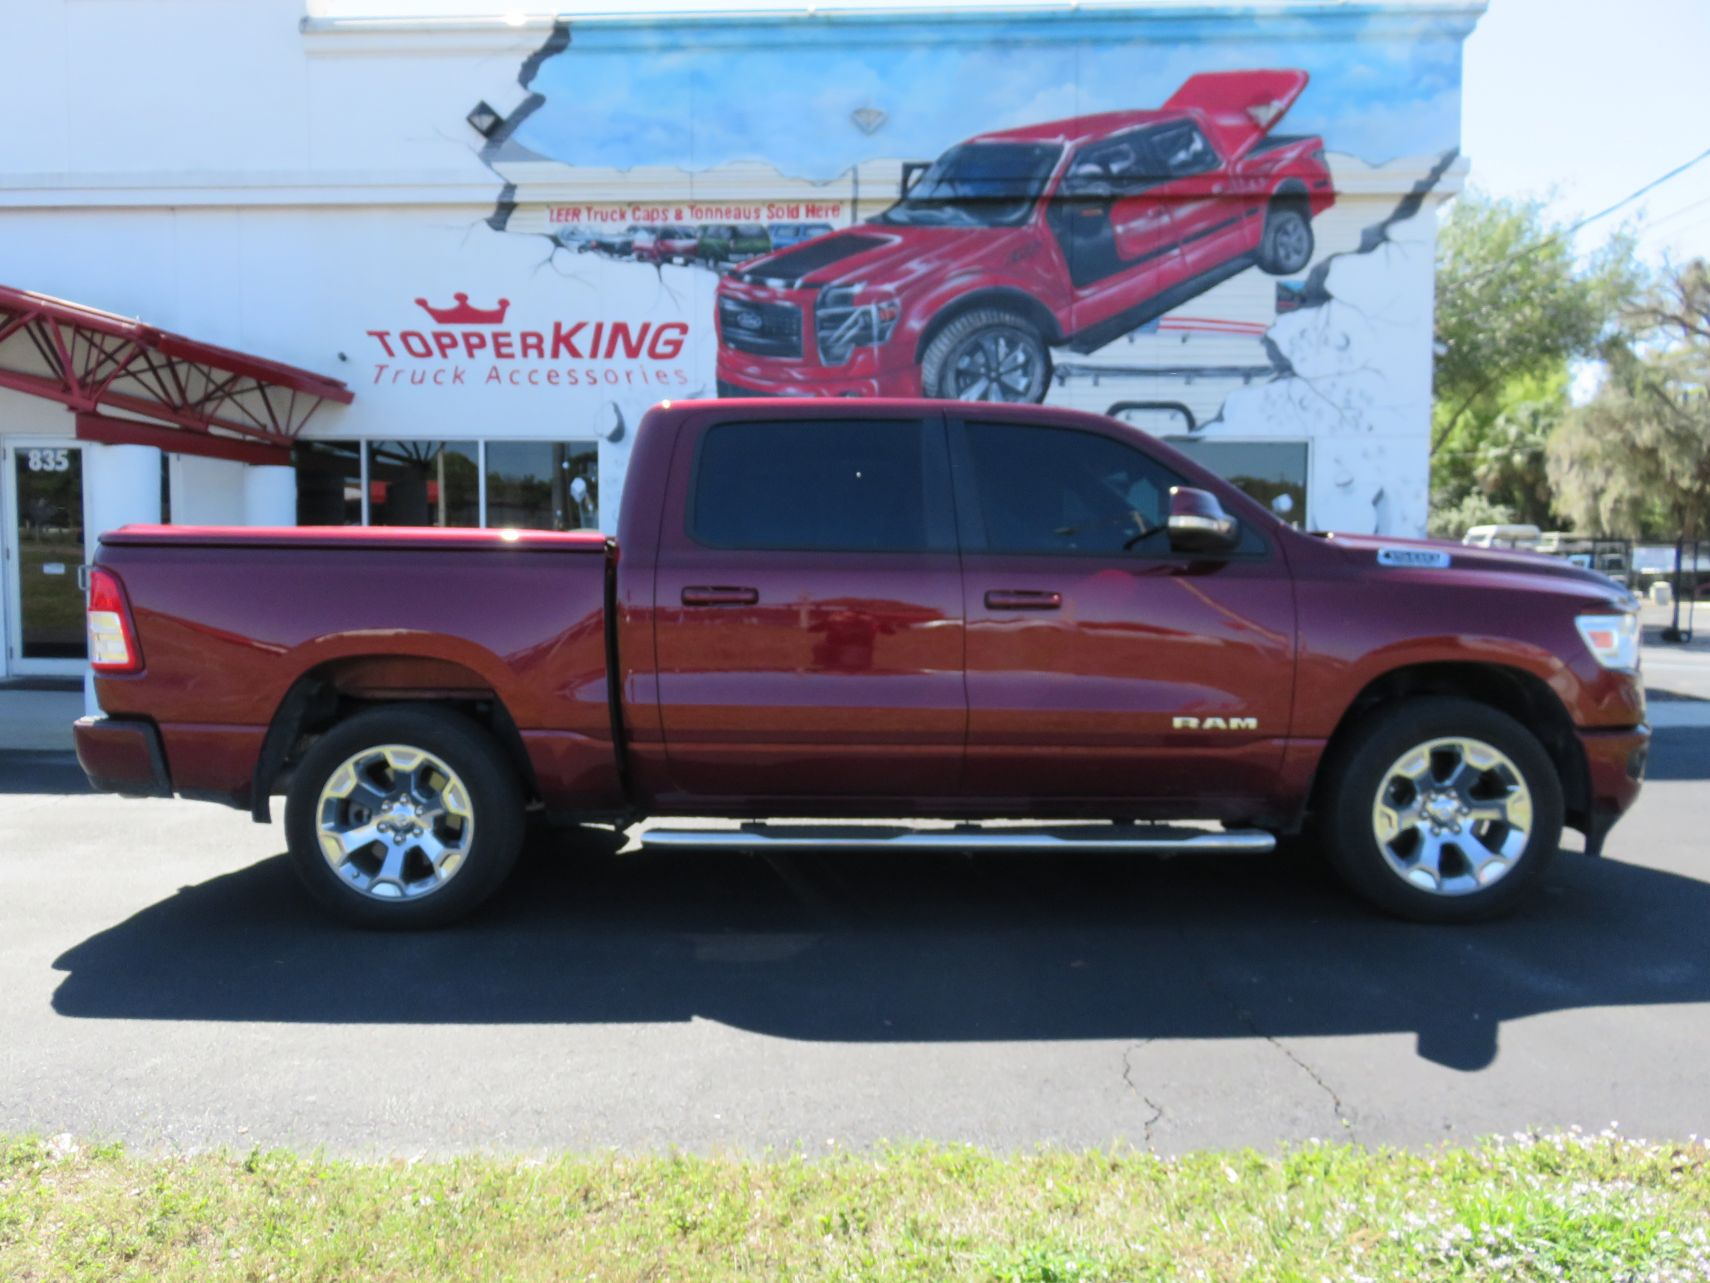 2019 Red Dodge Ram Undercover LUX, Nerf Bars, Hitch, Tint by TopperKING in Brandon, FL 813-689-2449 or Clearwater, FL 727-530-9066. Call today to start!